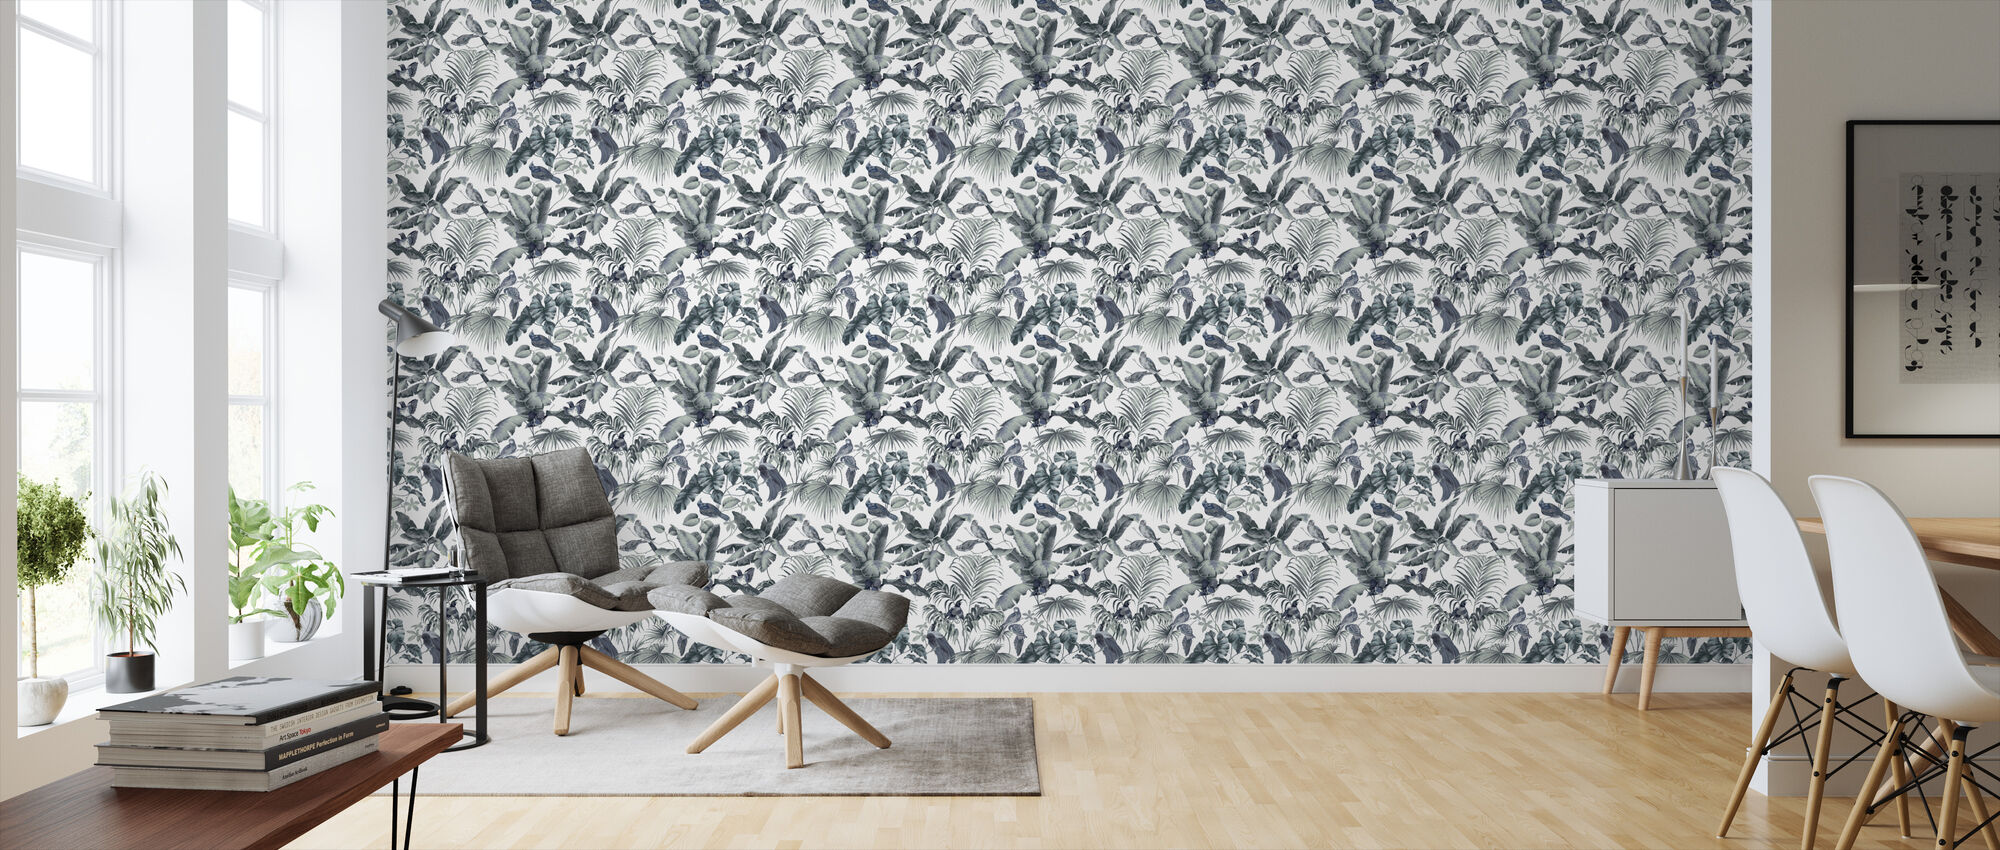 Jungle Canopy 2 Steel Gray - Wallpaper - Living Room